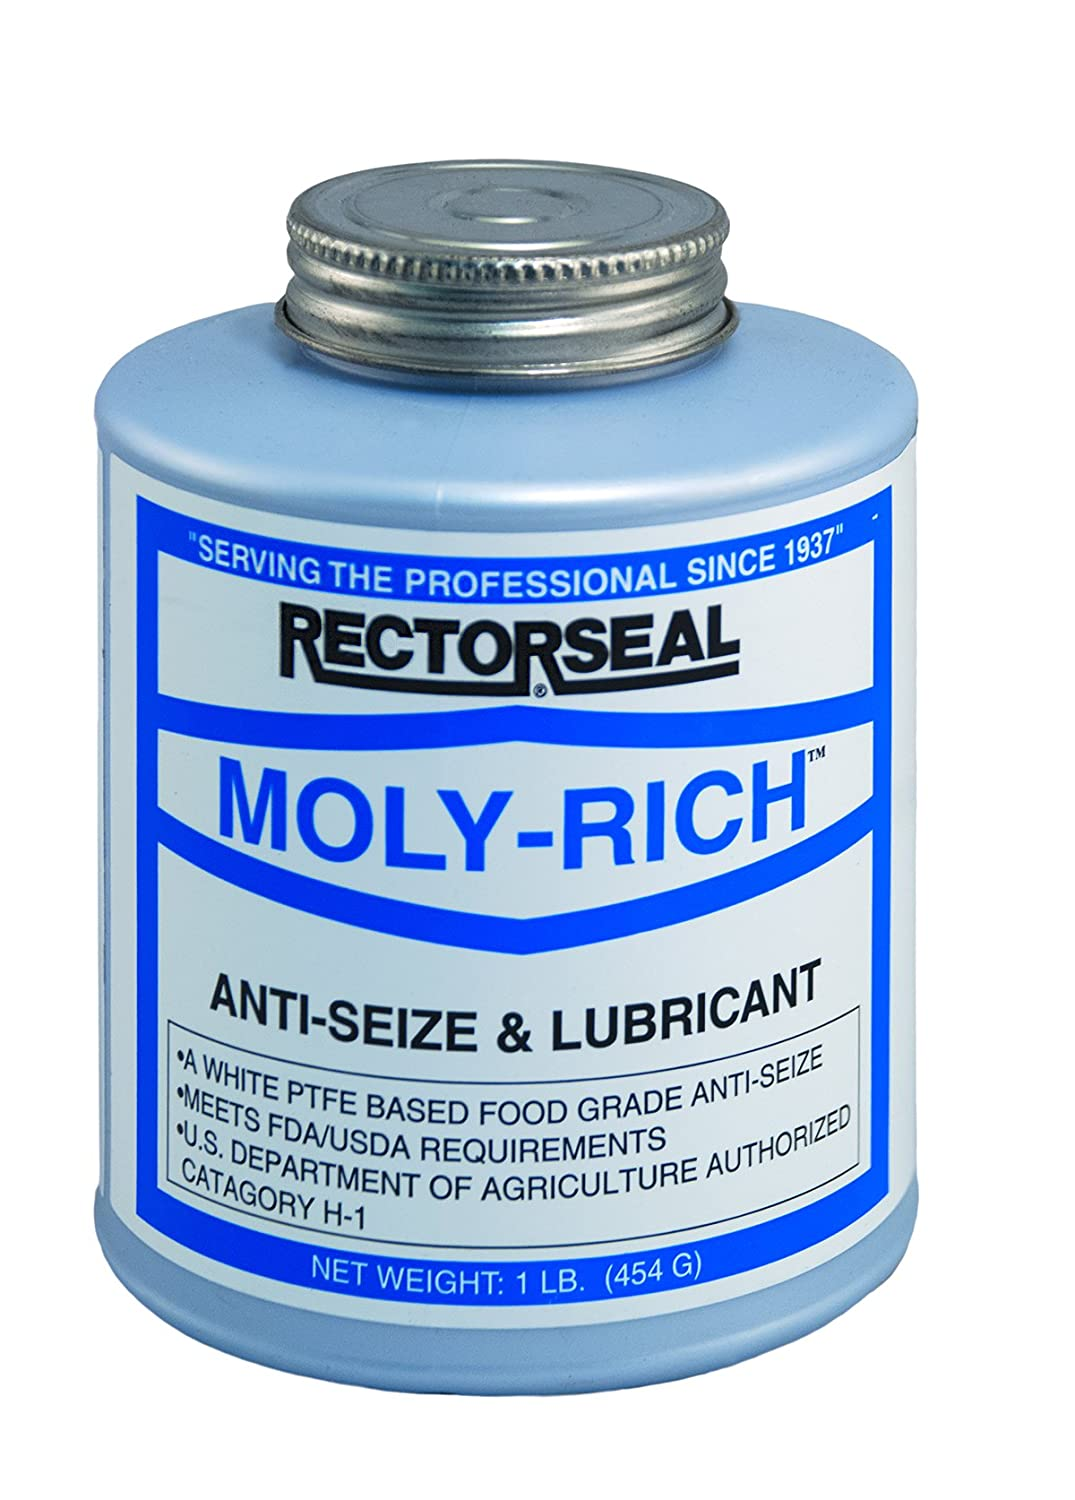 Rectorseal 71431 1-Pound Moly-Rich Antiseize And Lubricant The Rectorseal Corporation